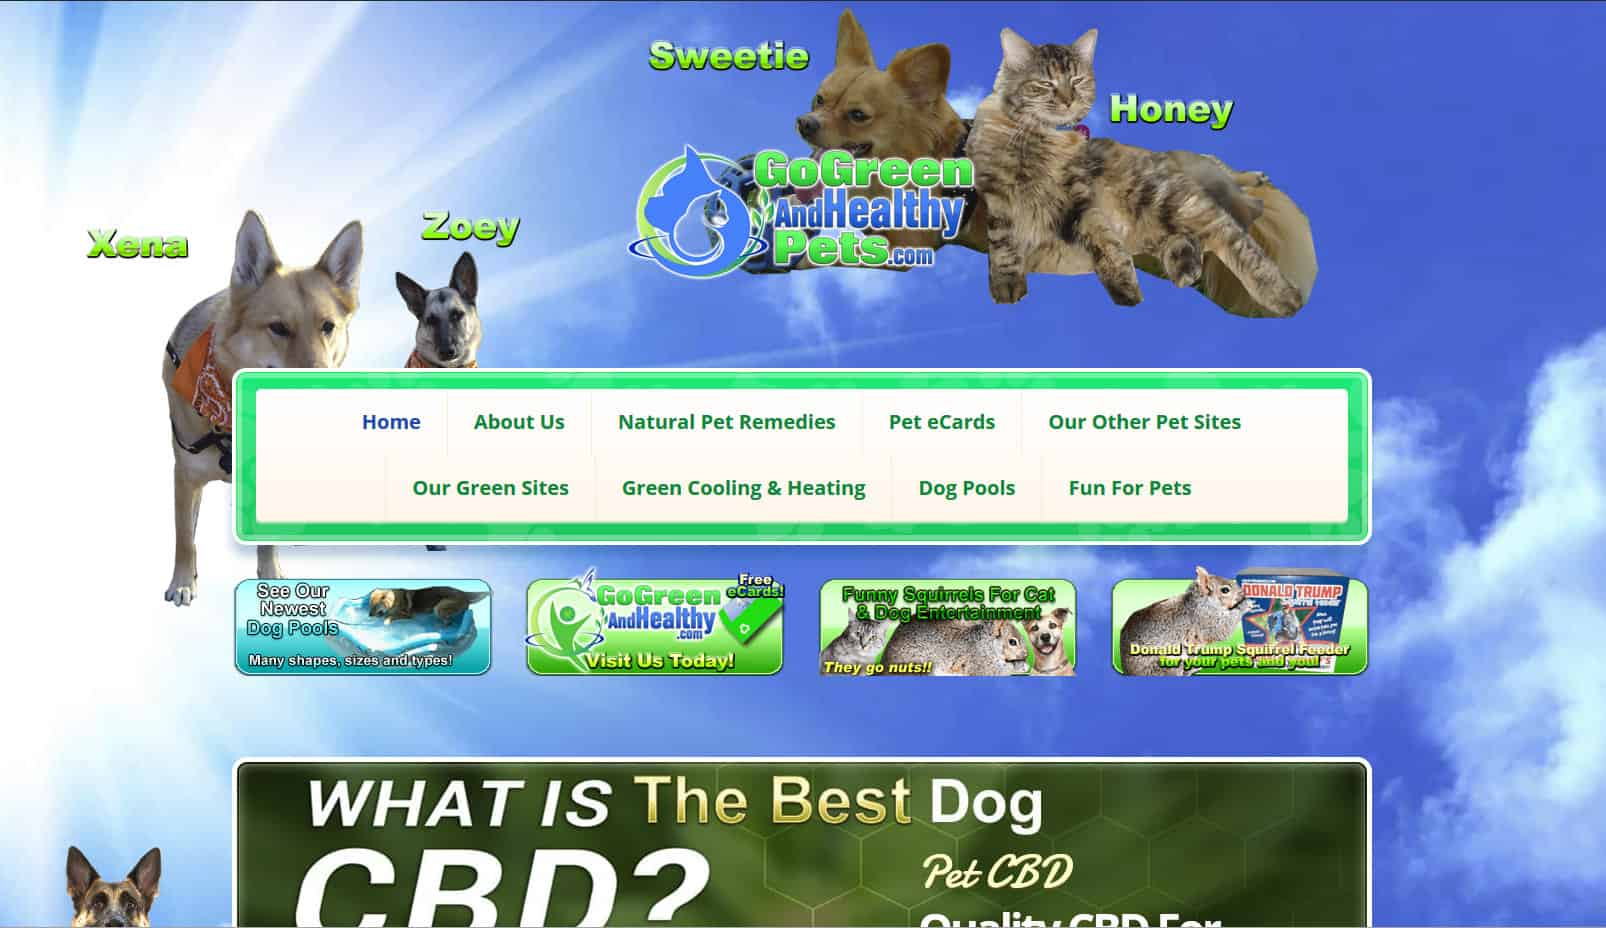 Paws & Claws theme applied to pet site